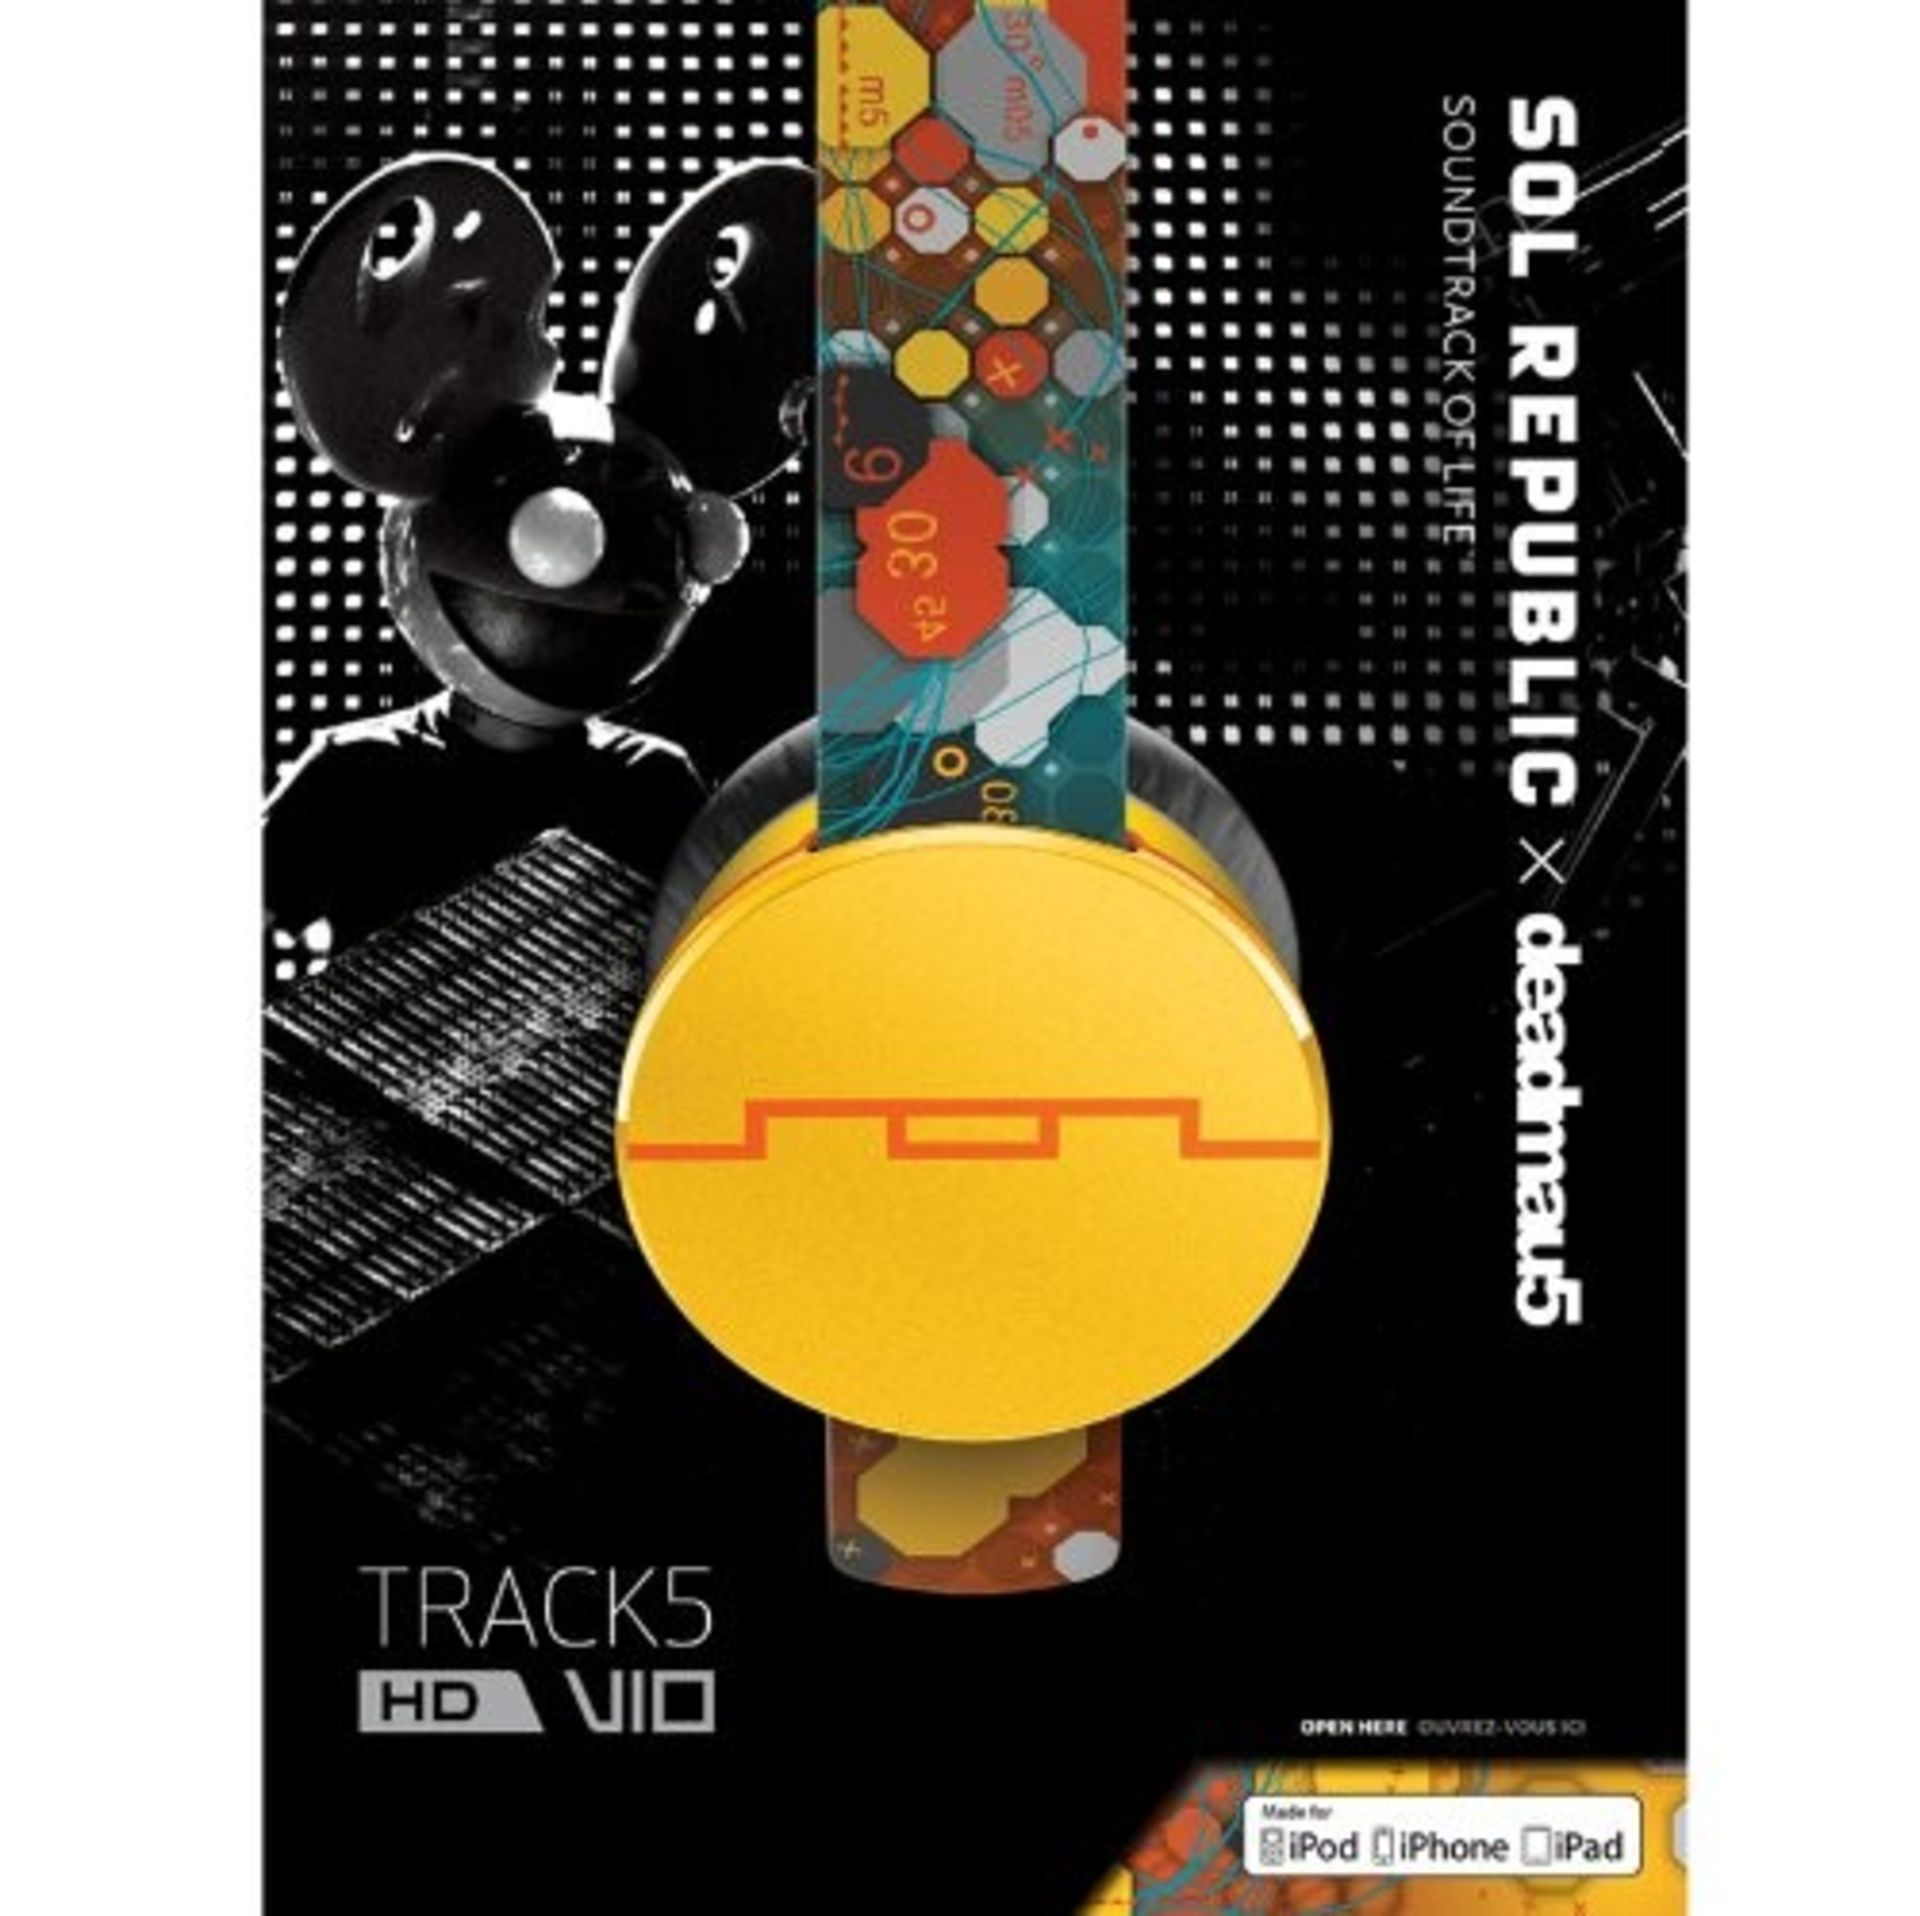 + VAT Brand New Sol Republic Tracks V8 Multicoloured - With Sonic Ear Cushions - Music & Phone - Image 2 of 2